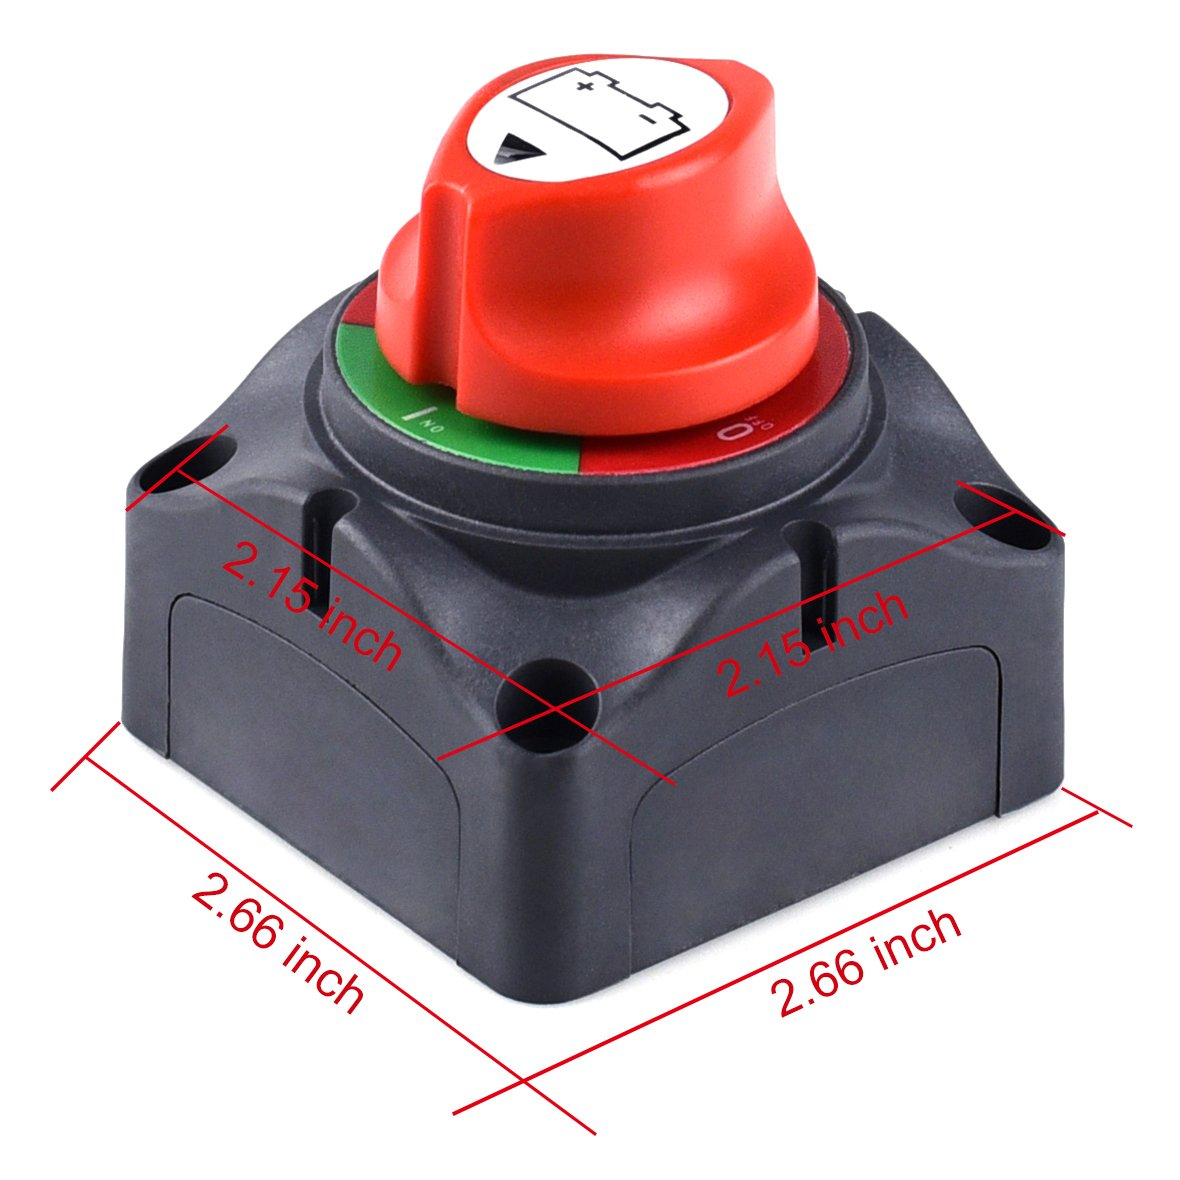 Cllena Battery Isolator Disconnect Cut Off Power Kill Switch for Car Boat Rv ATV